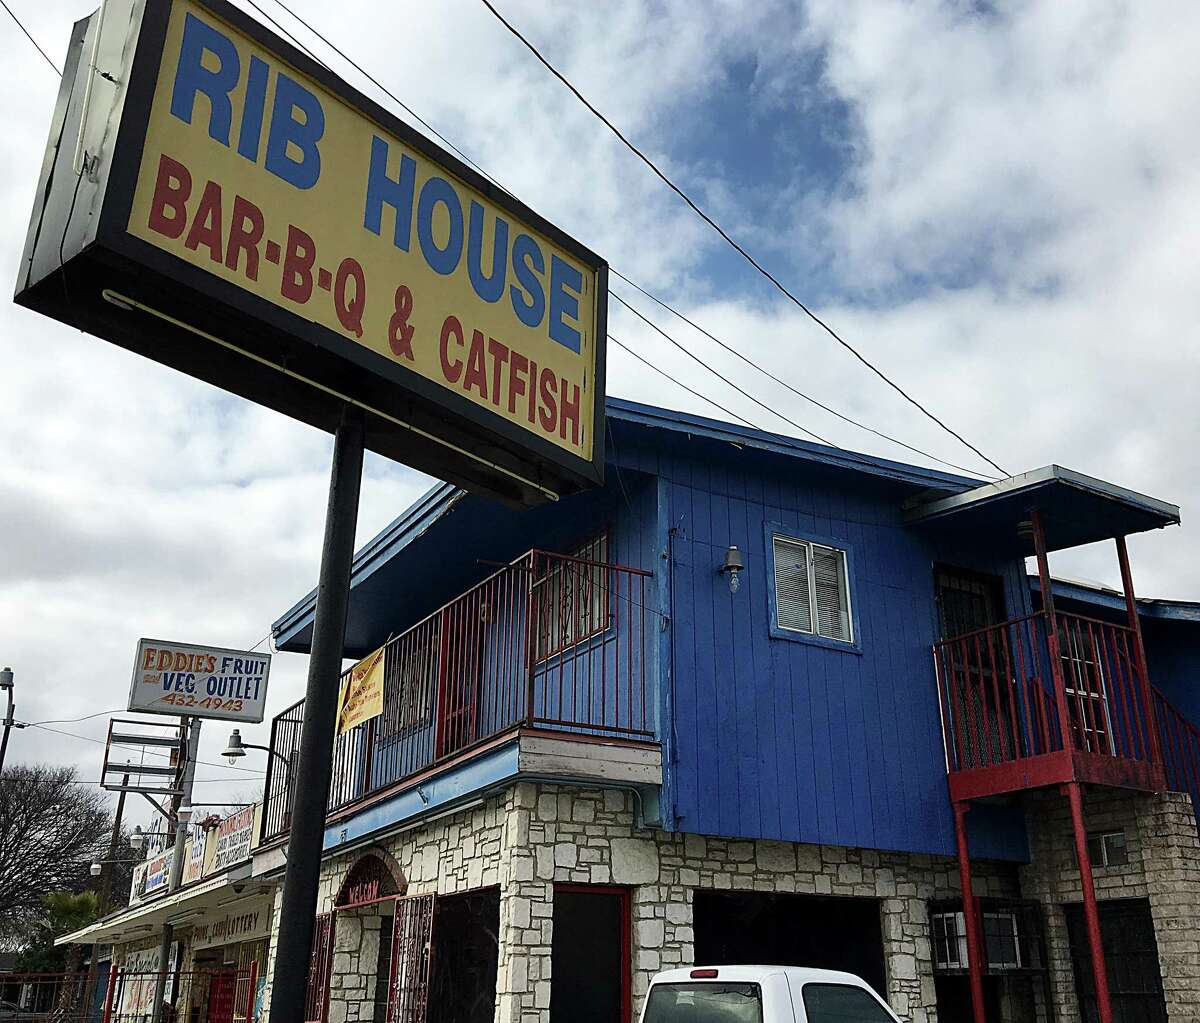 The Rib House barbecue and soul-food restaurant on Enrique M. Barrera Parkway.